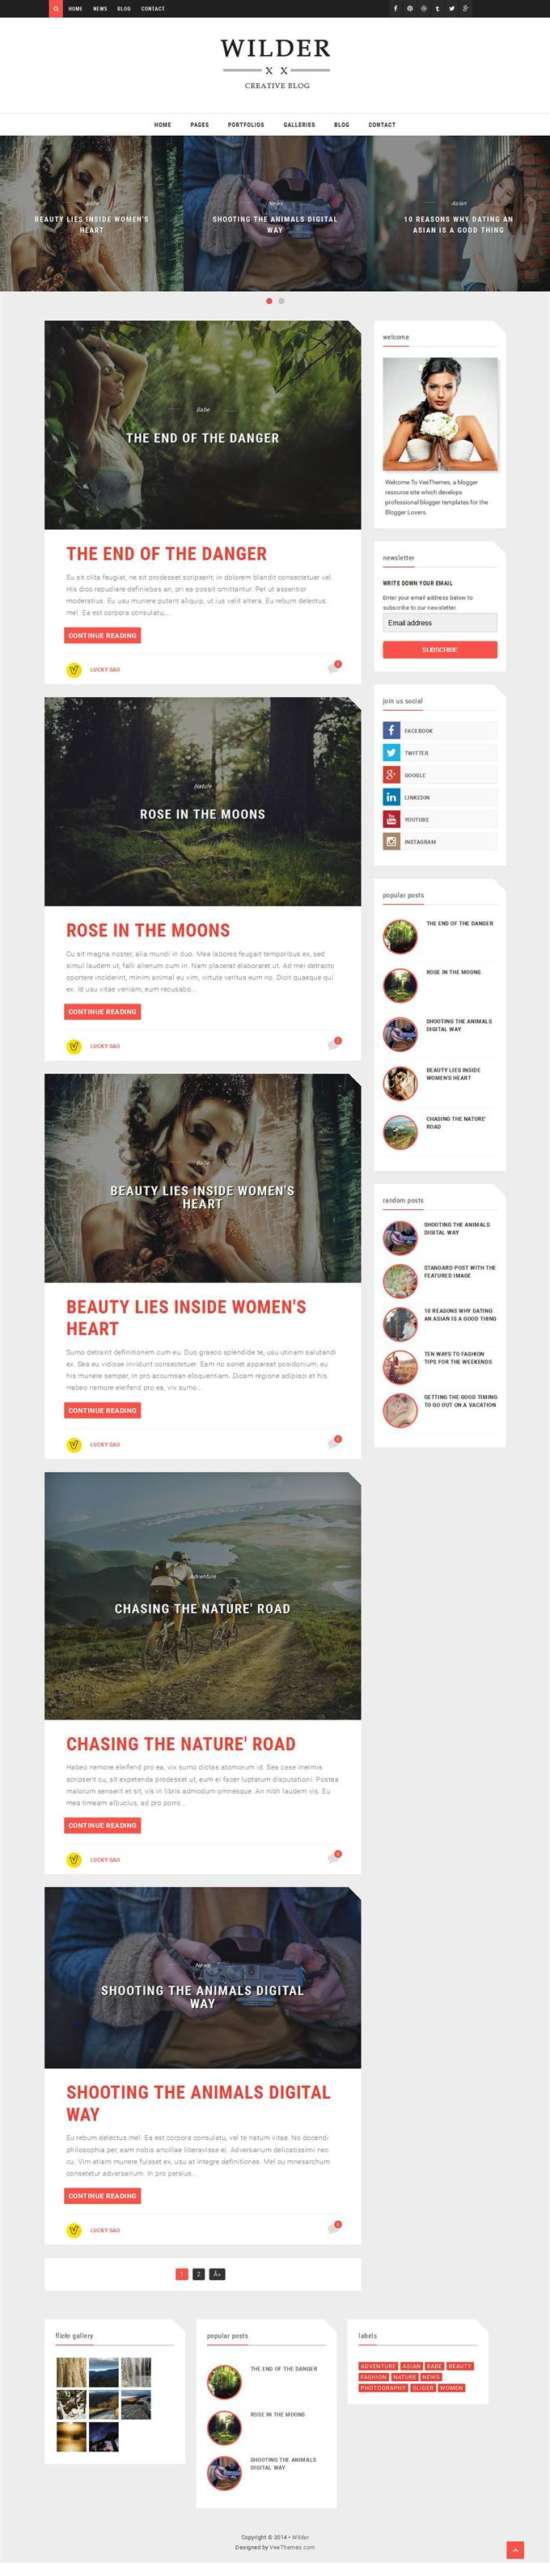 wilder_photography_blogger_template_screenshot